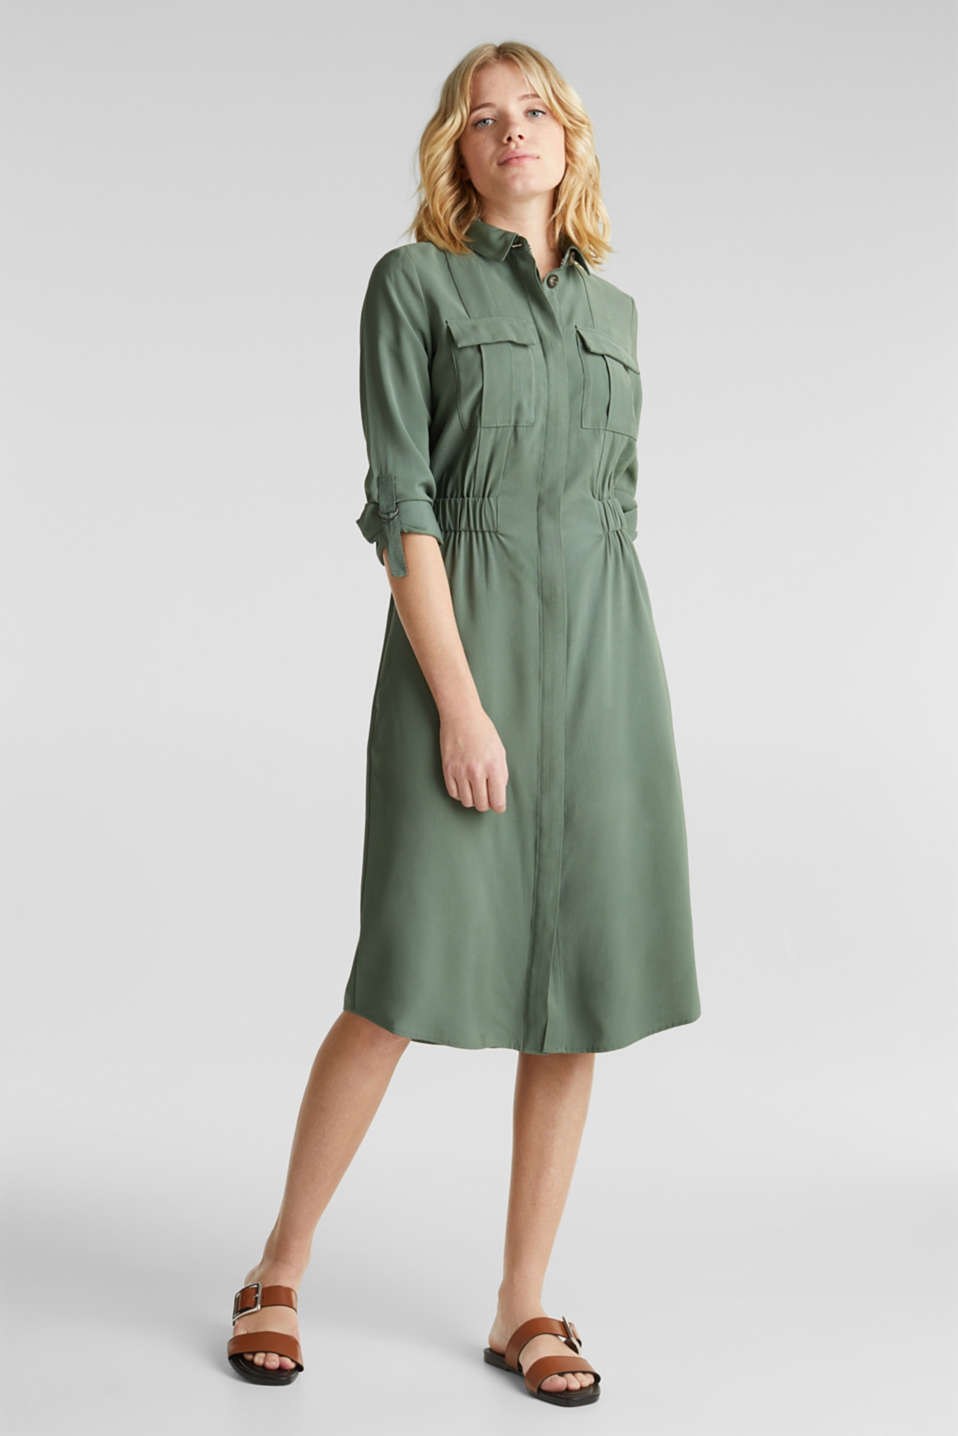 Shirt dress in a utility style, KHAKI GREEN, detail image number 1